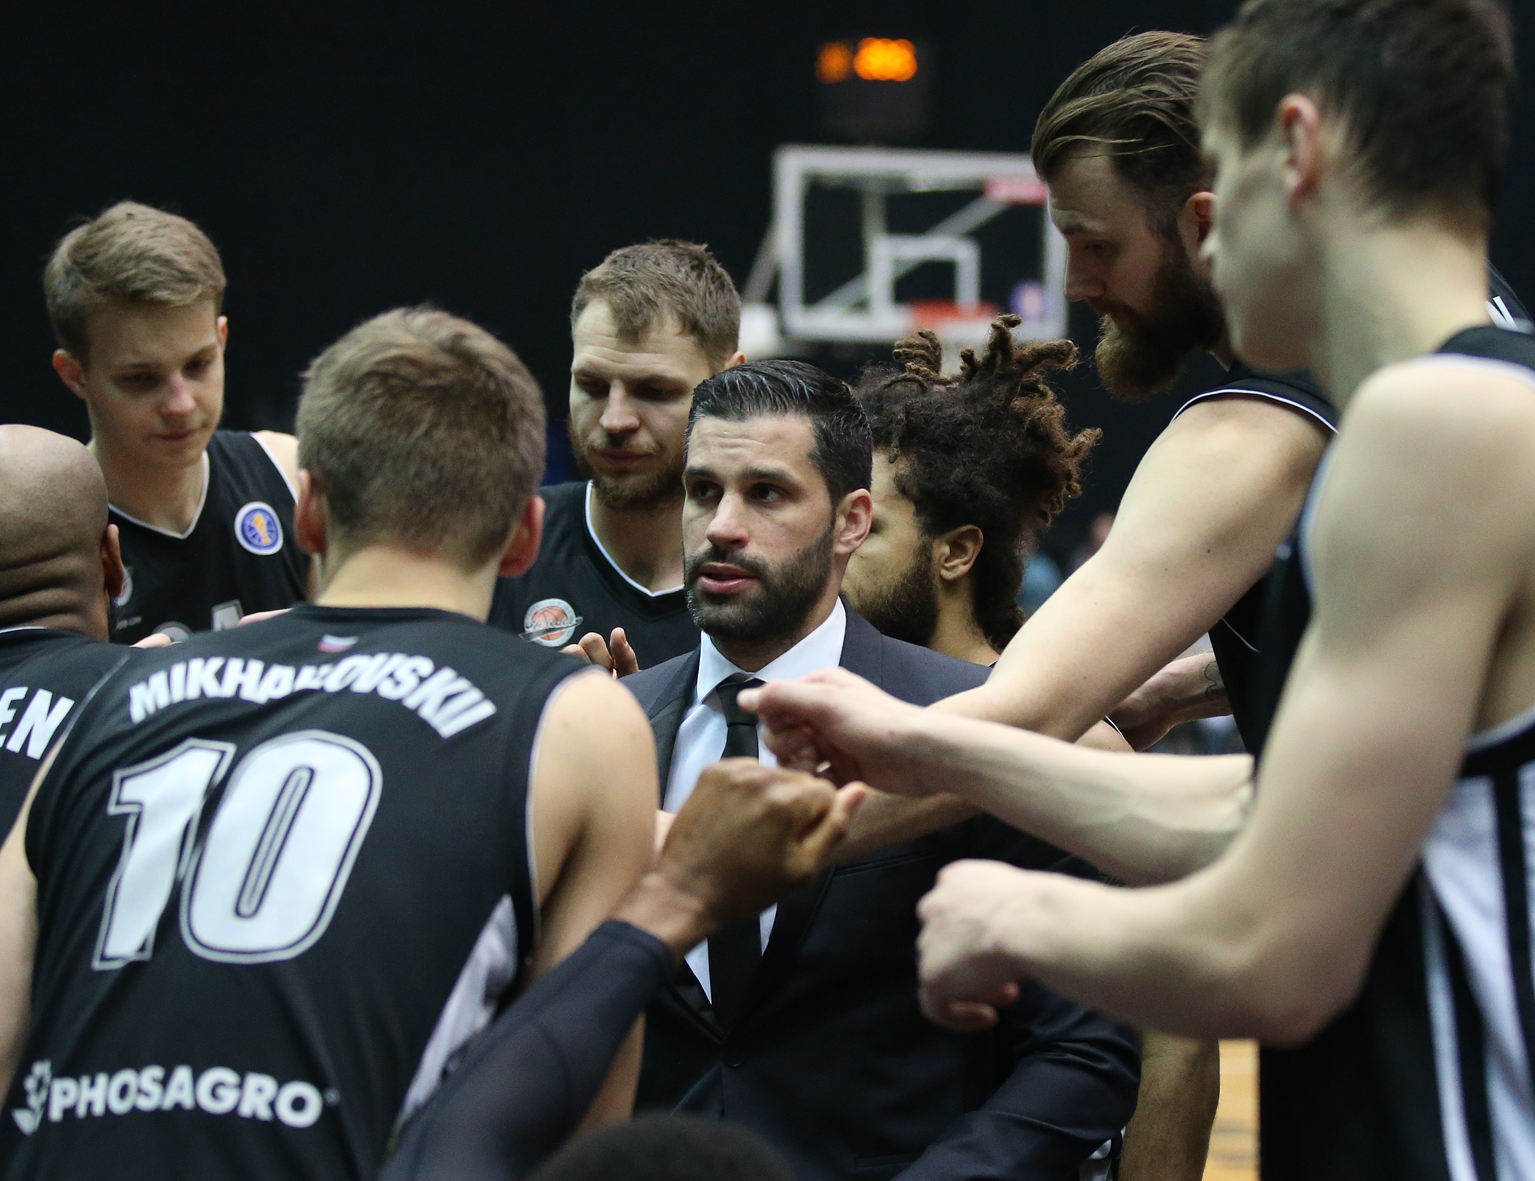 Dusan Alimpijevic's Playbook: How The Serb Is Changing Avtodor's Approach